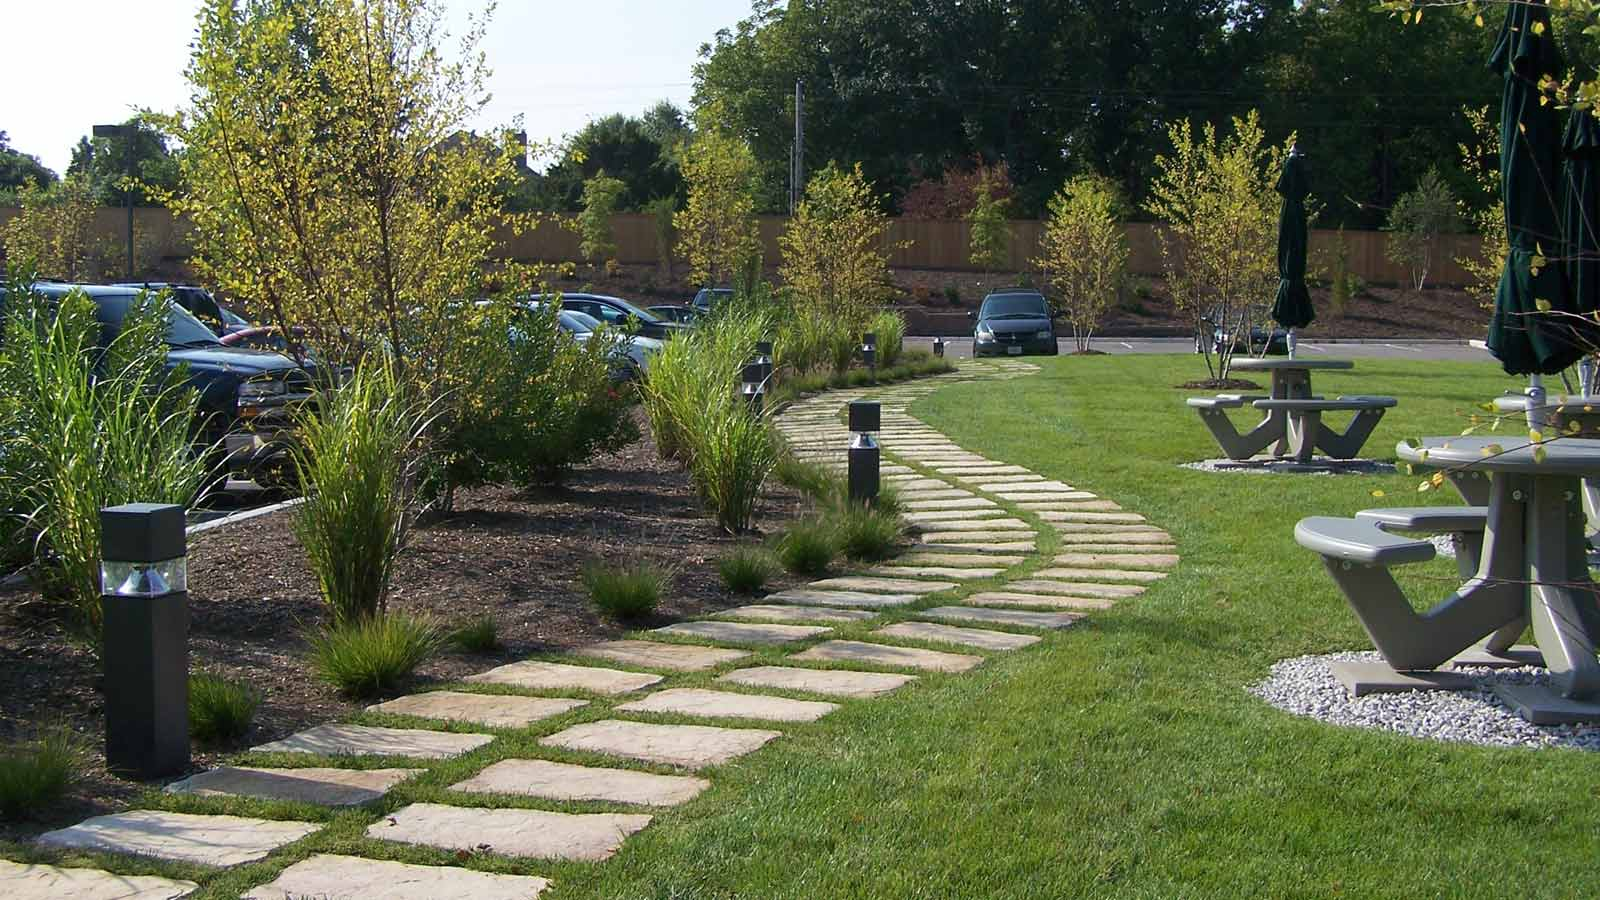 Commercial Landscaping-Woodlands TX Landscape Designs & Outdoor Living Areas-We offer Landscape Design, Outdoor Patios & Pergolas, Outdoor Living Spaces, Stonescapes, Residential & Commercial Landscaping, Irrigation Installation & Repairs, Drainage Systems, Landscape Lighting, Outdoor Living Spaces, Tree Service, Lawn Service, and more.